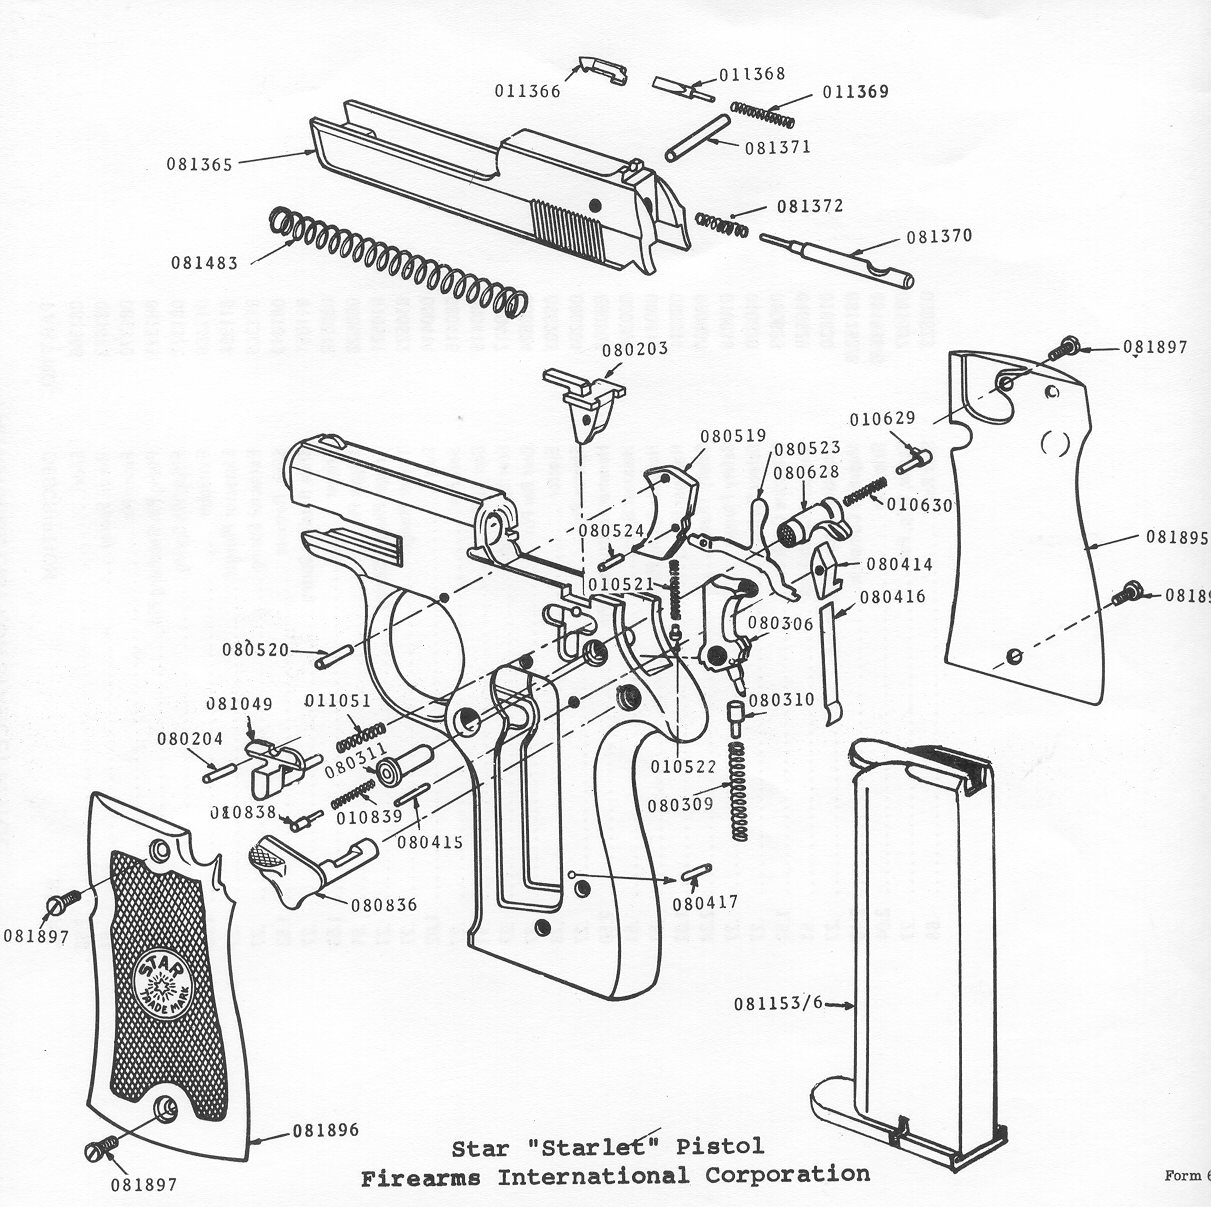 9mm Drawing At Free For Personal Use Glock 17 Parts Diagram Related Keywords Suggestions 1211x1207 Star Gun Repair From Bobs Shop